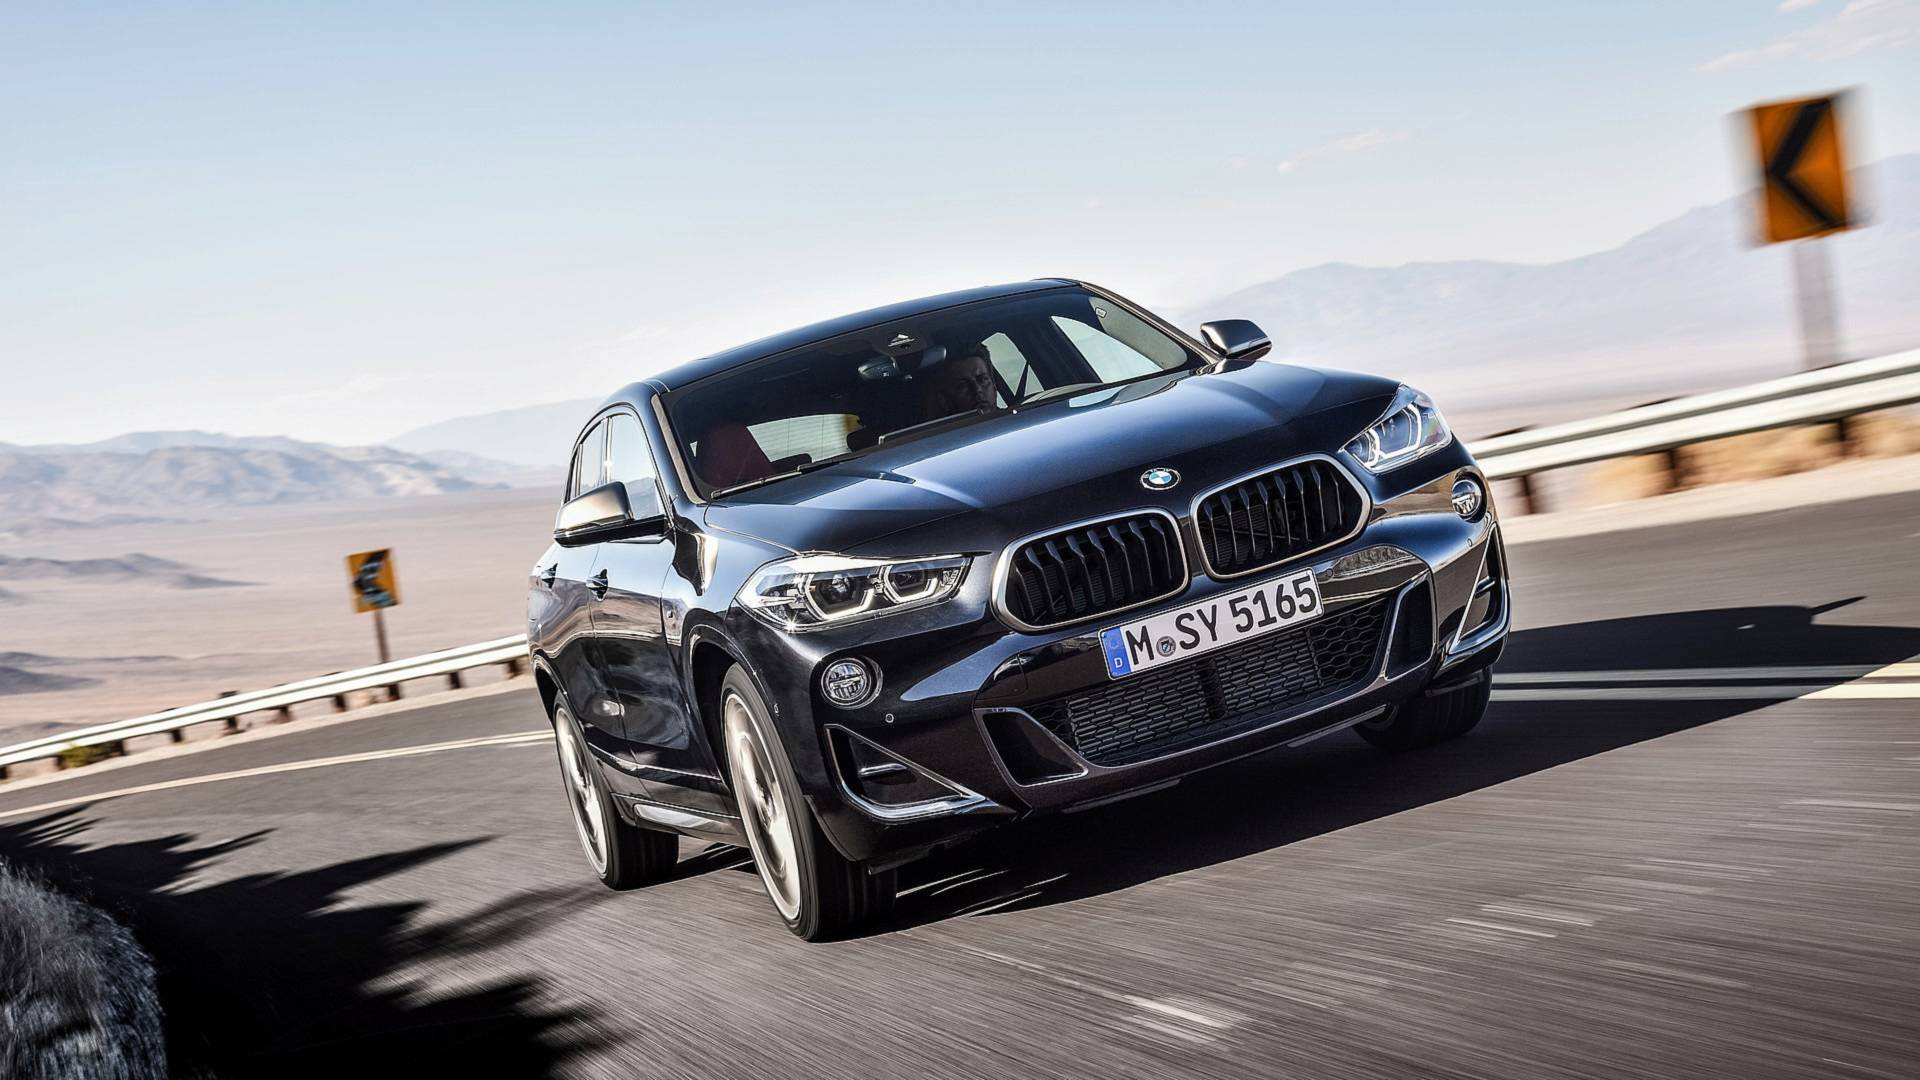 2019 Bmw X2 M35i Is No X2 M But It S Good Enough Autoevolution